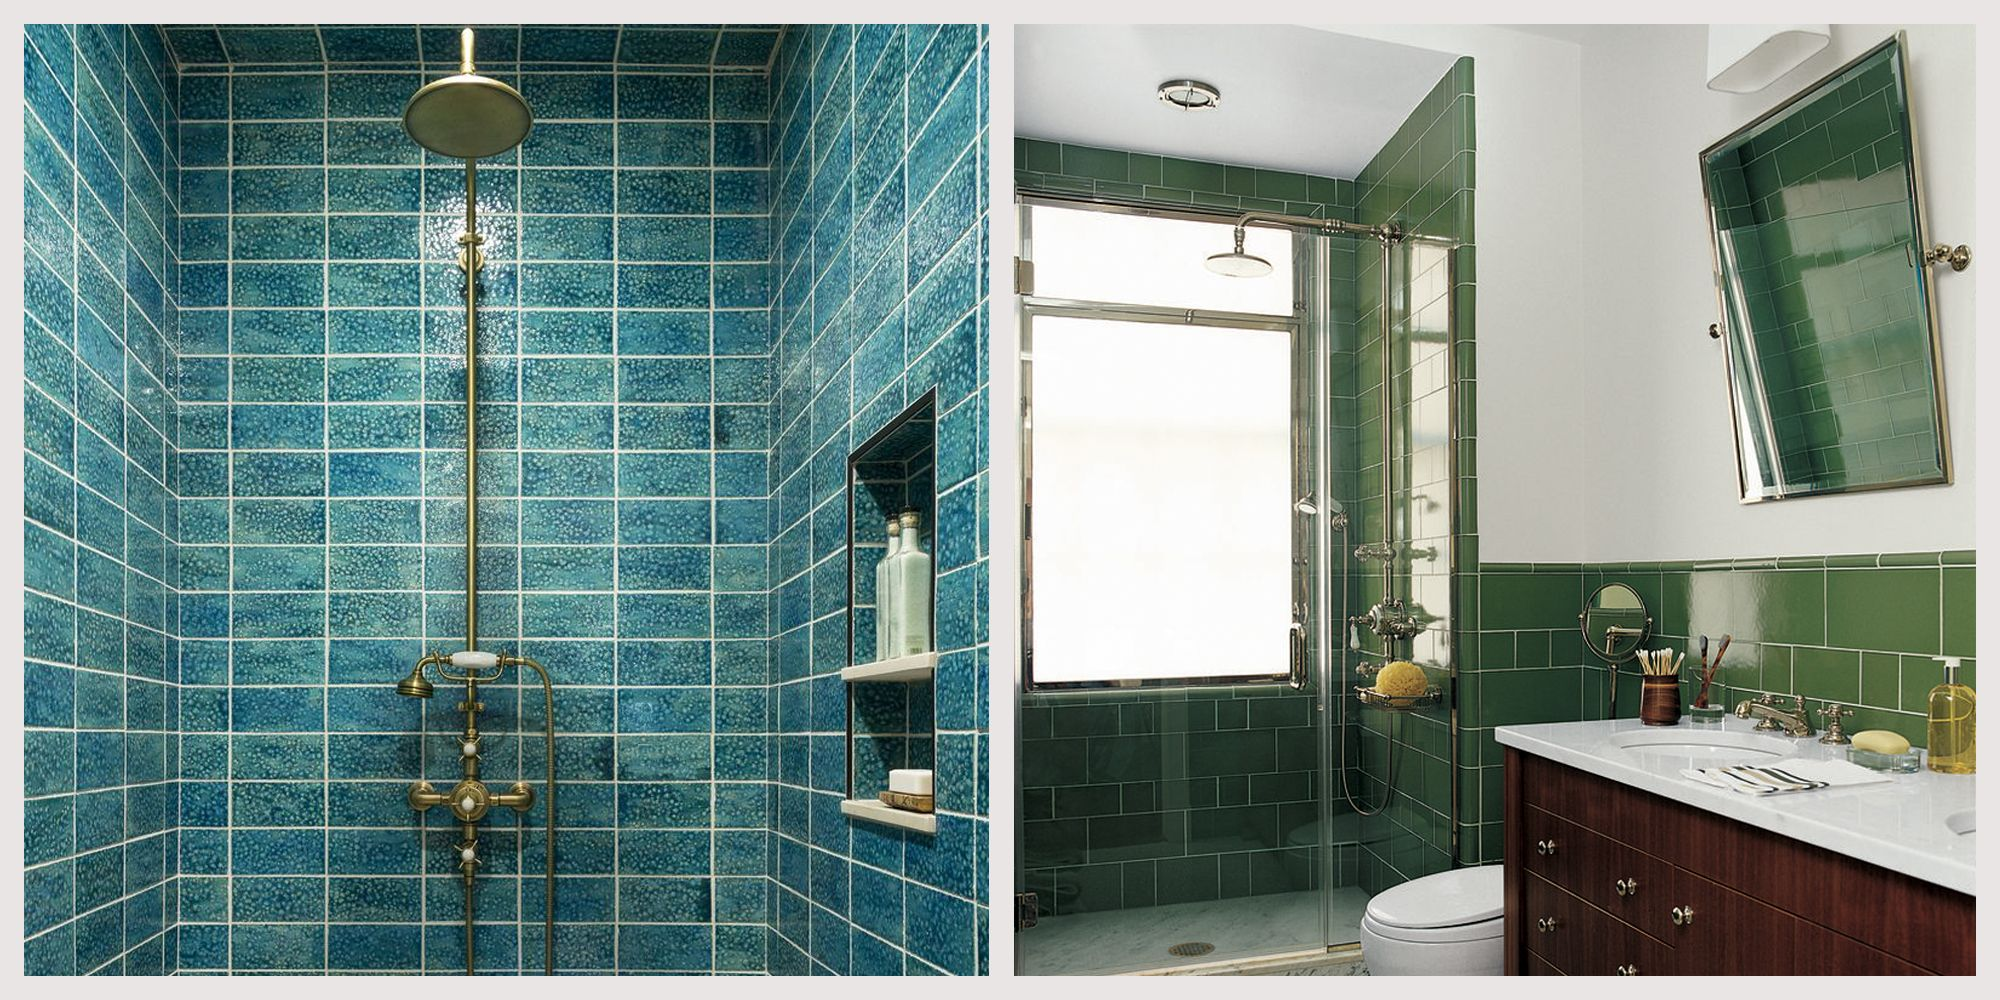 24 Creative Bathrooms with Vibrant Blue & Green Shower Tiles